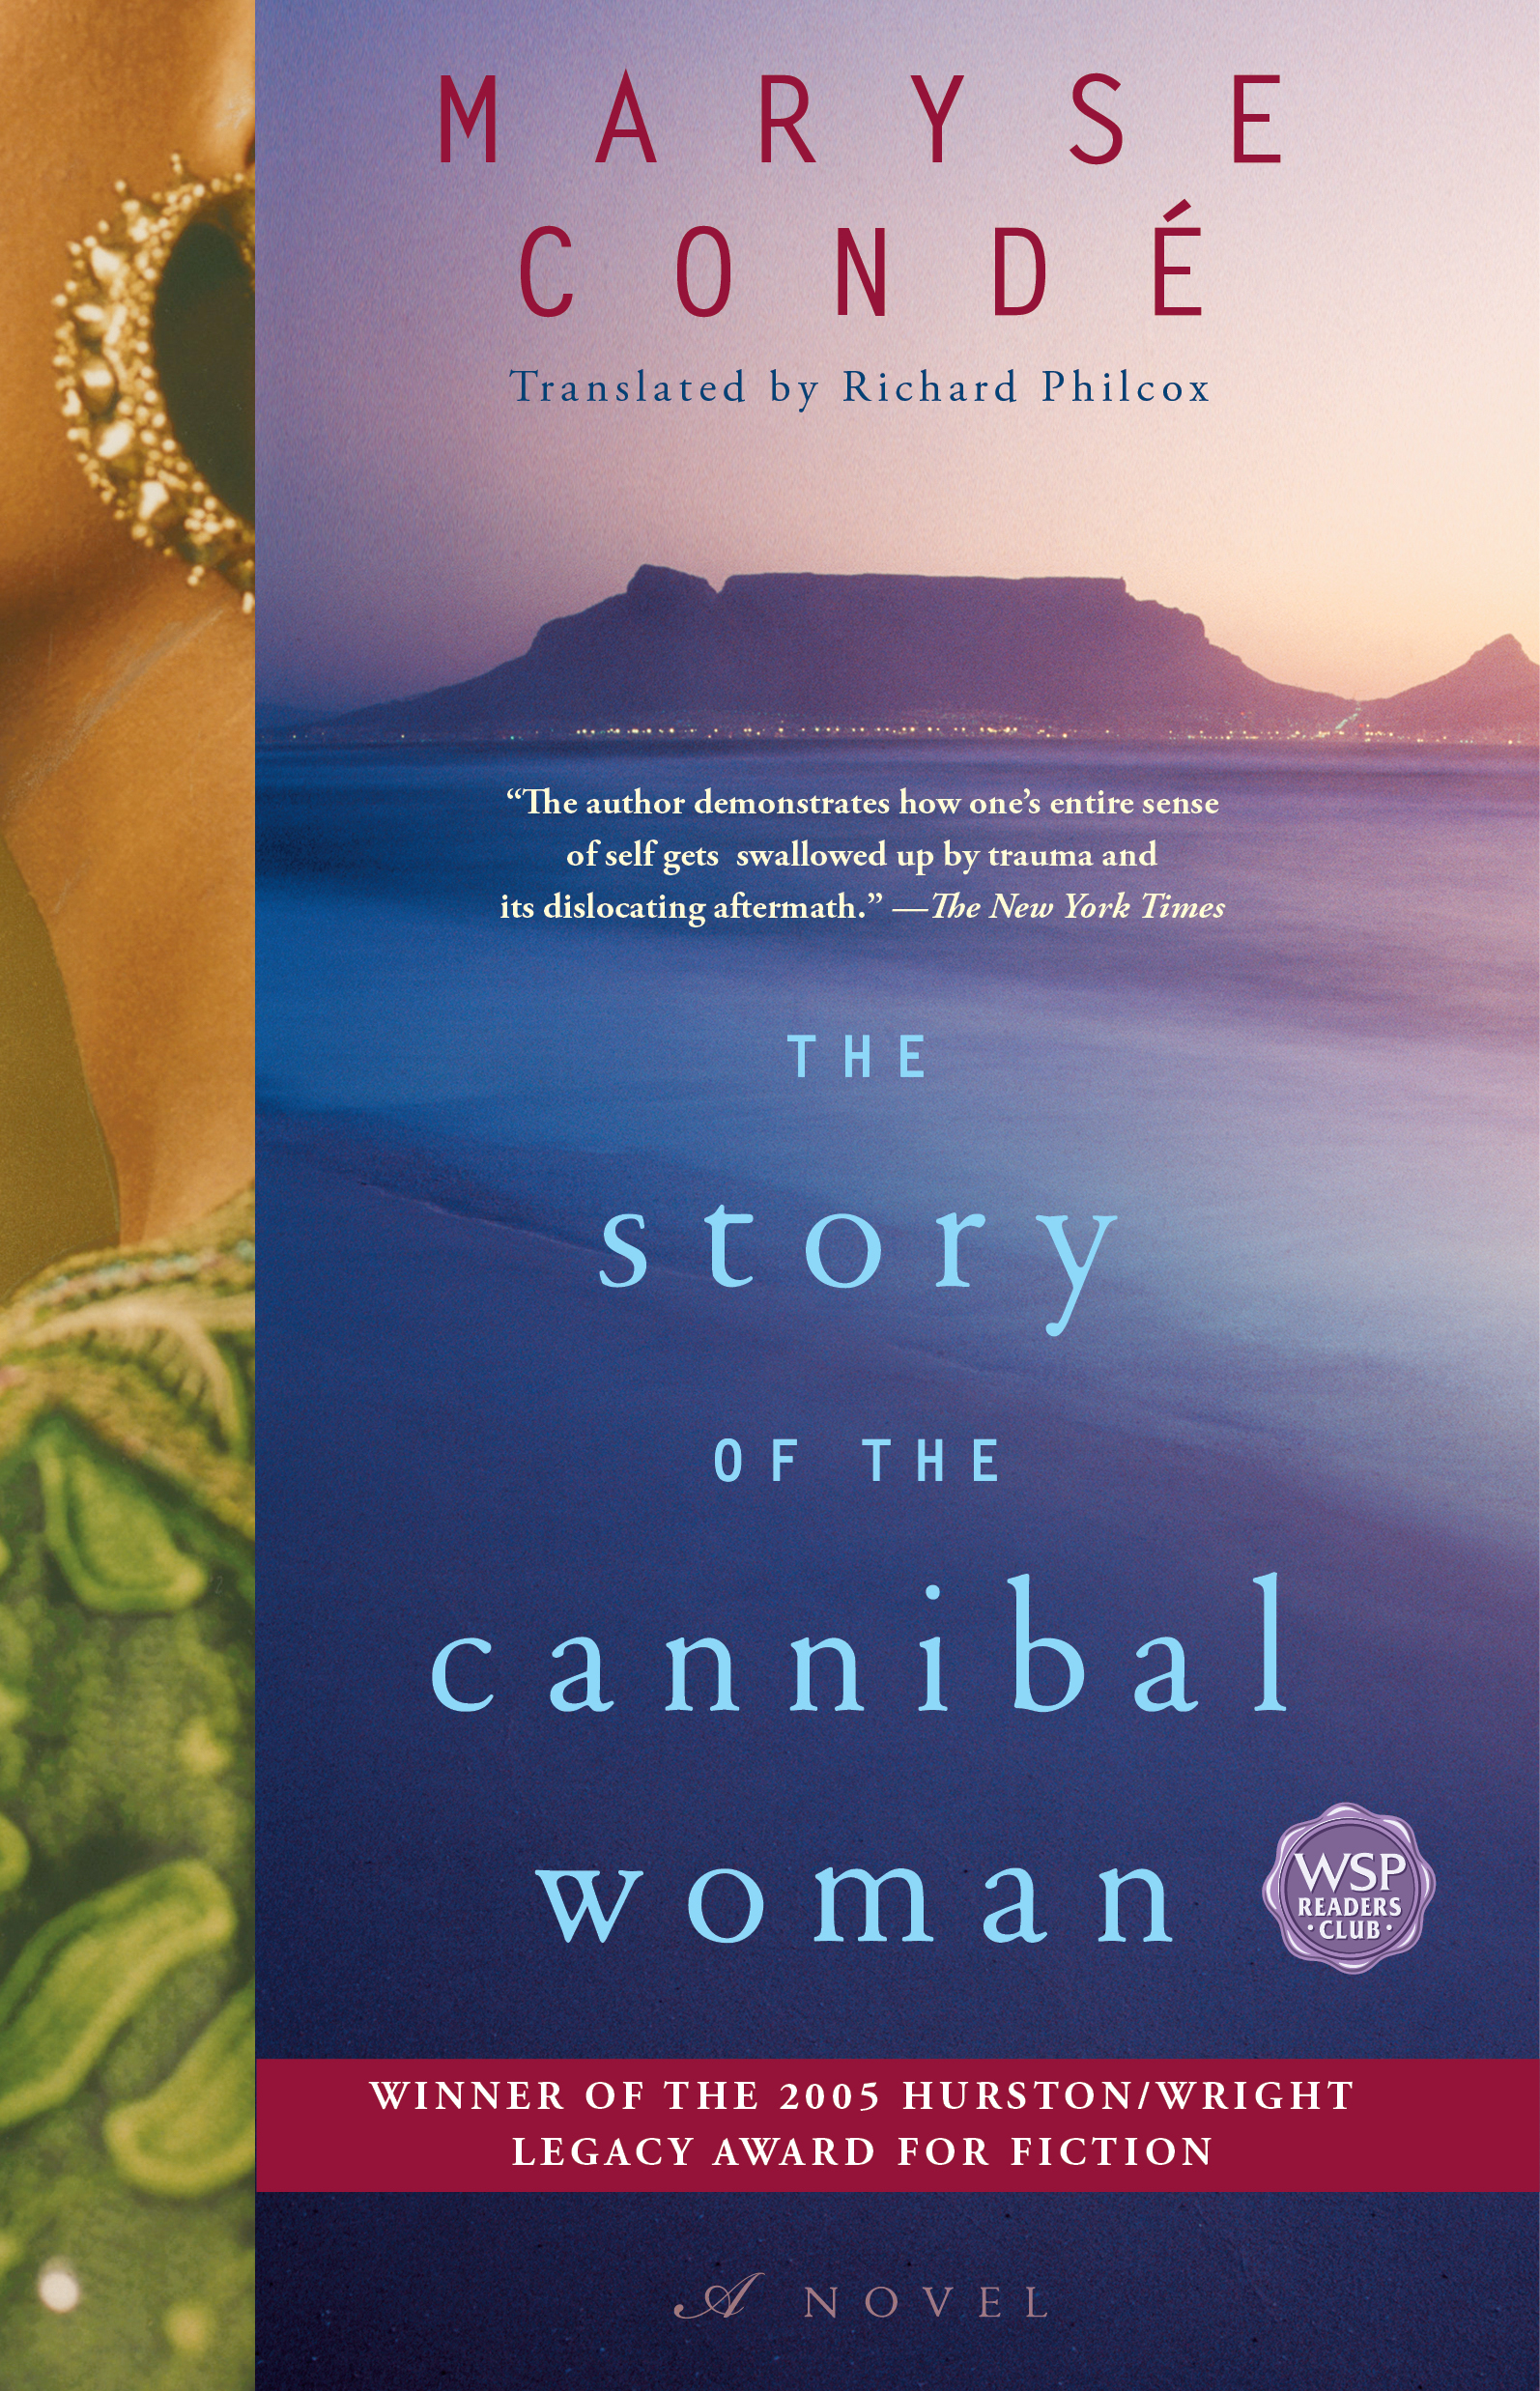 The Story of the Cannibal Woman by Maryse Condé Washington Square Press 320 pages